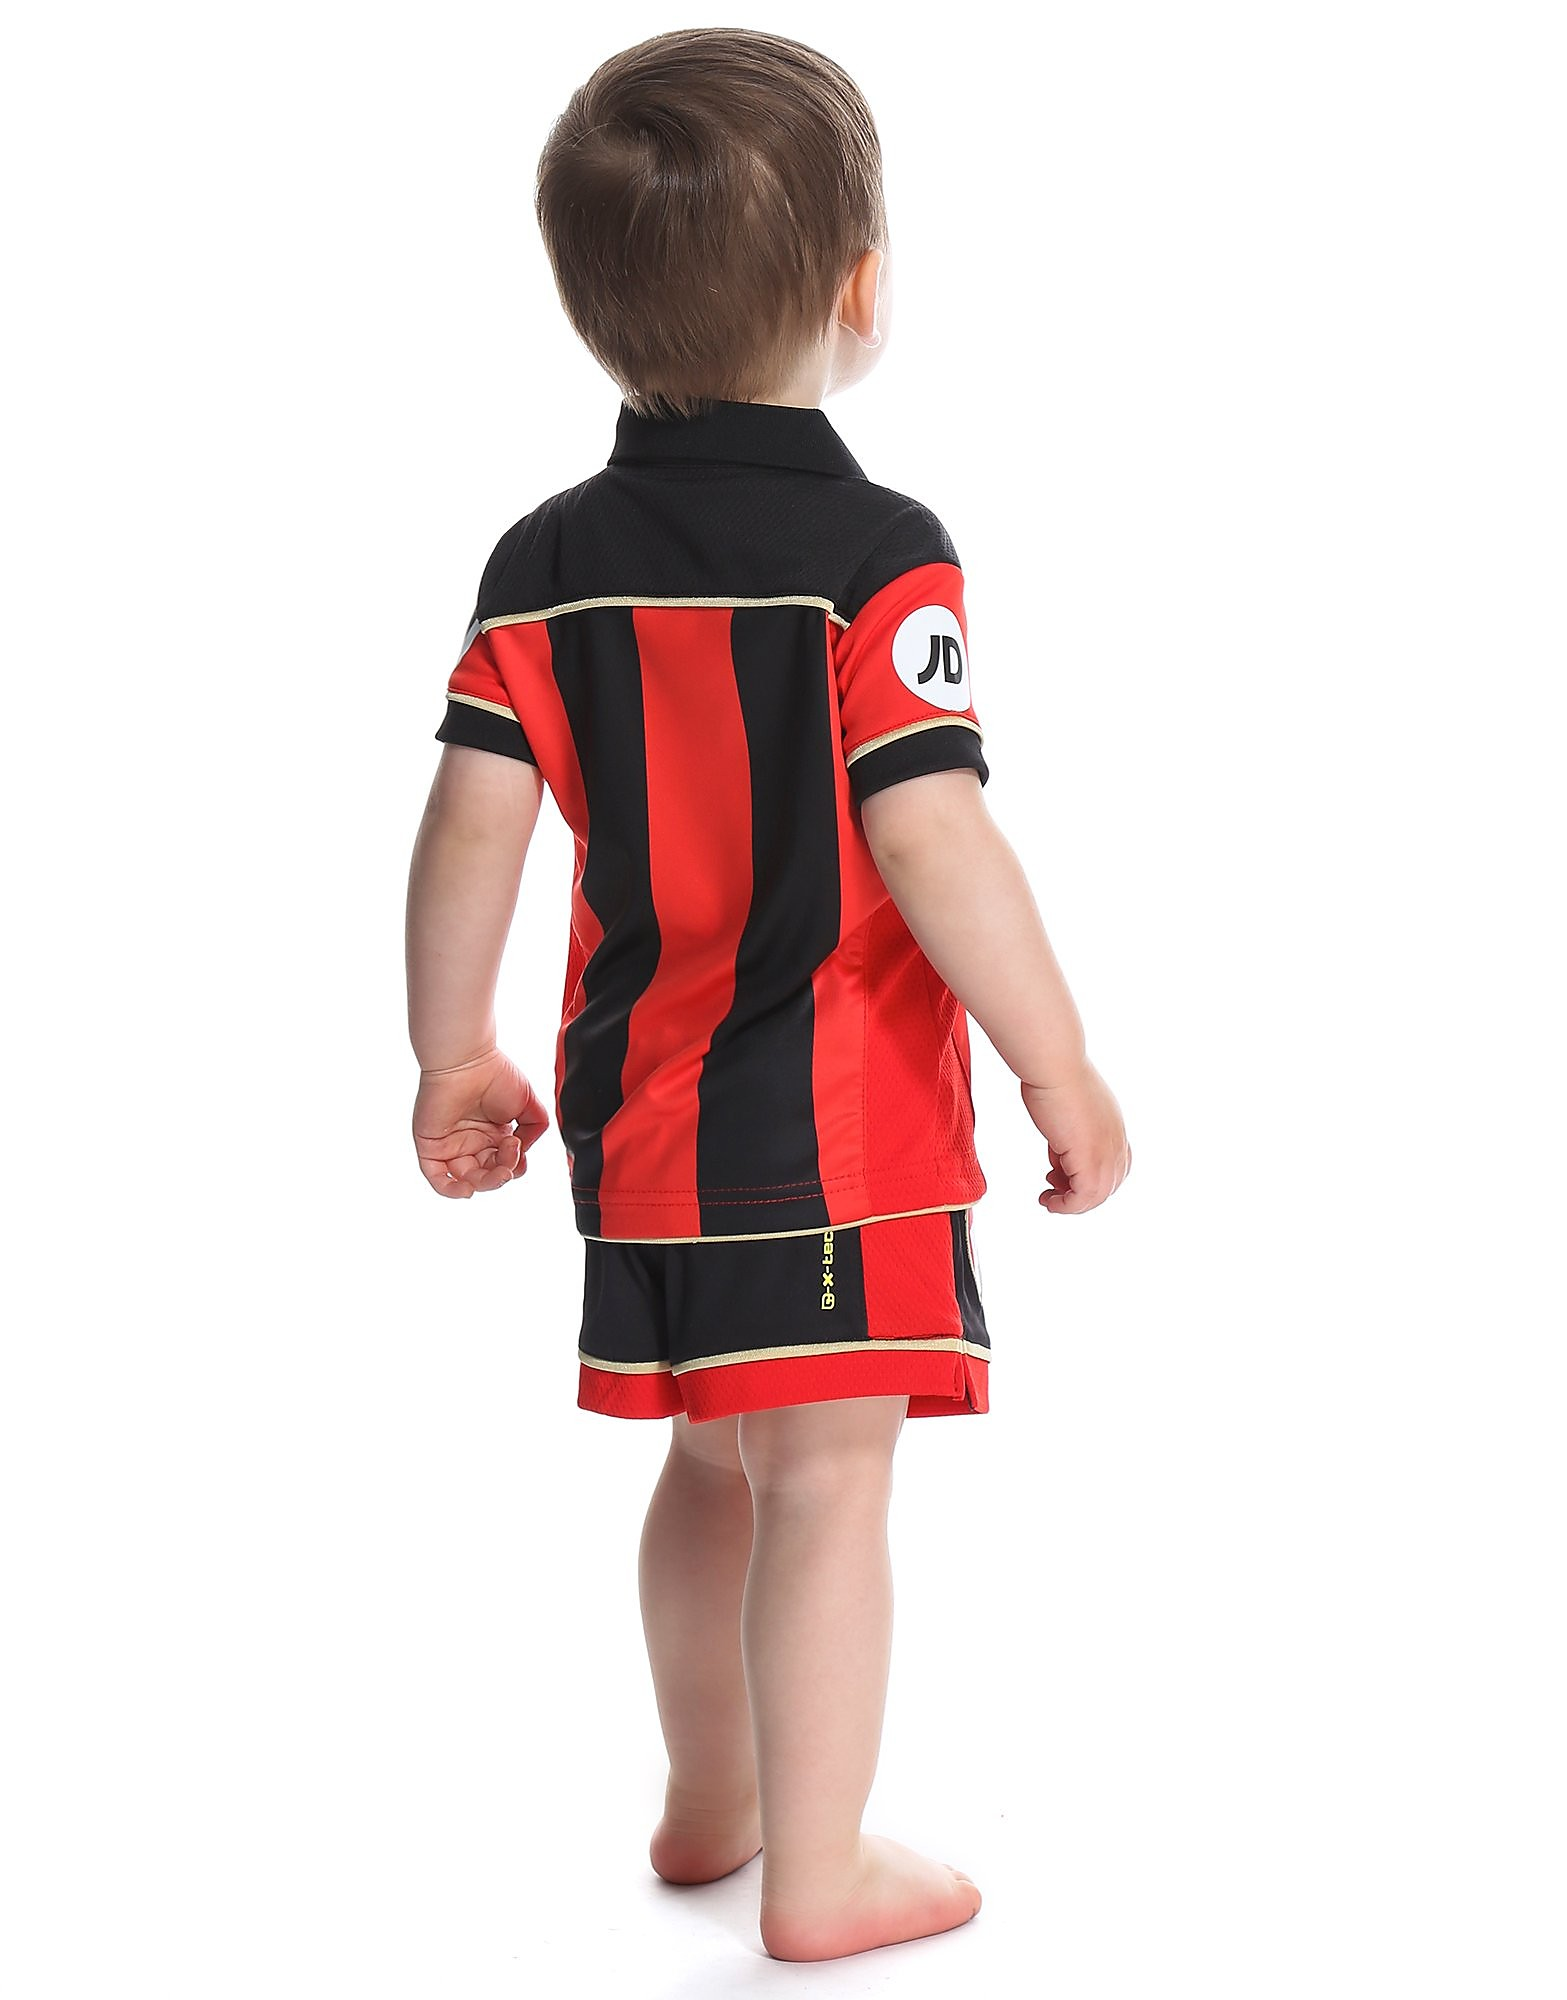 JD AFC Bournemouth 2016/17 Home Kit Infant